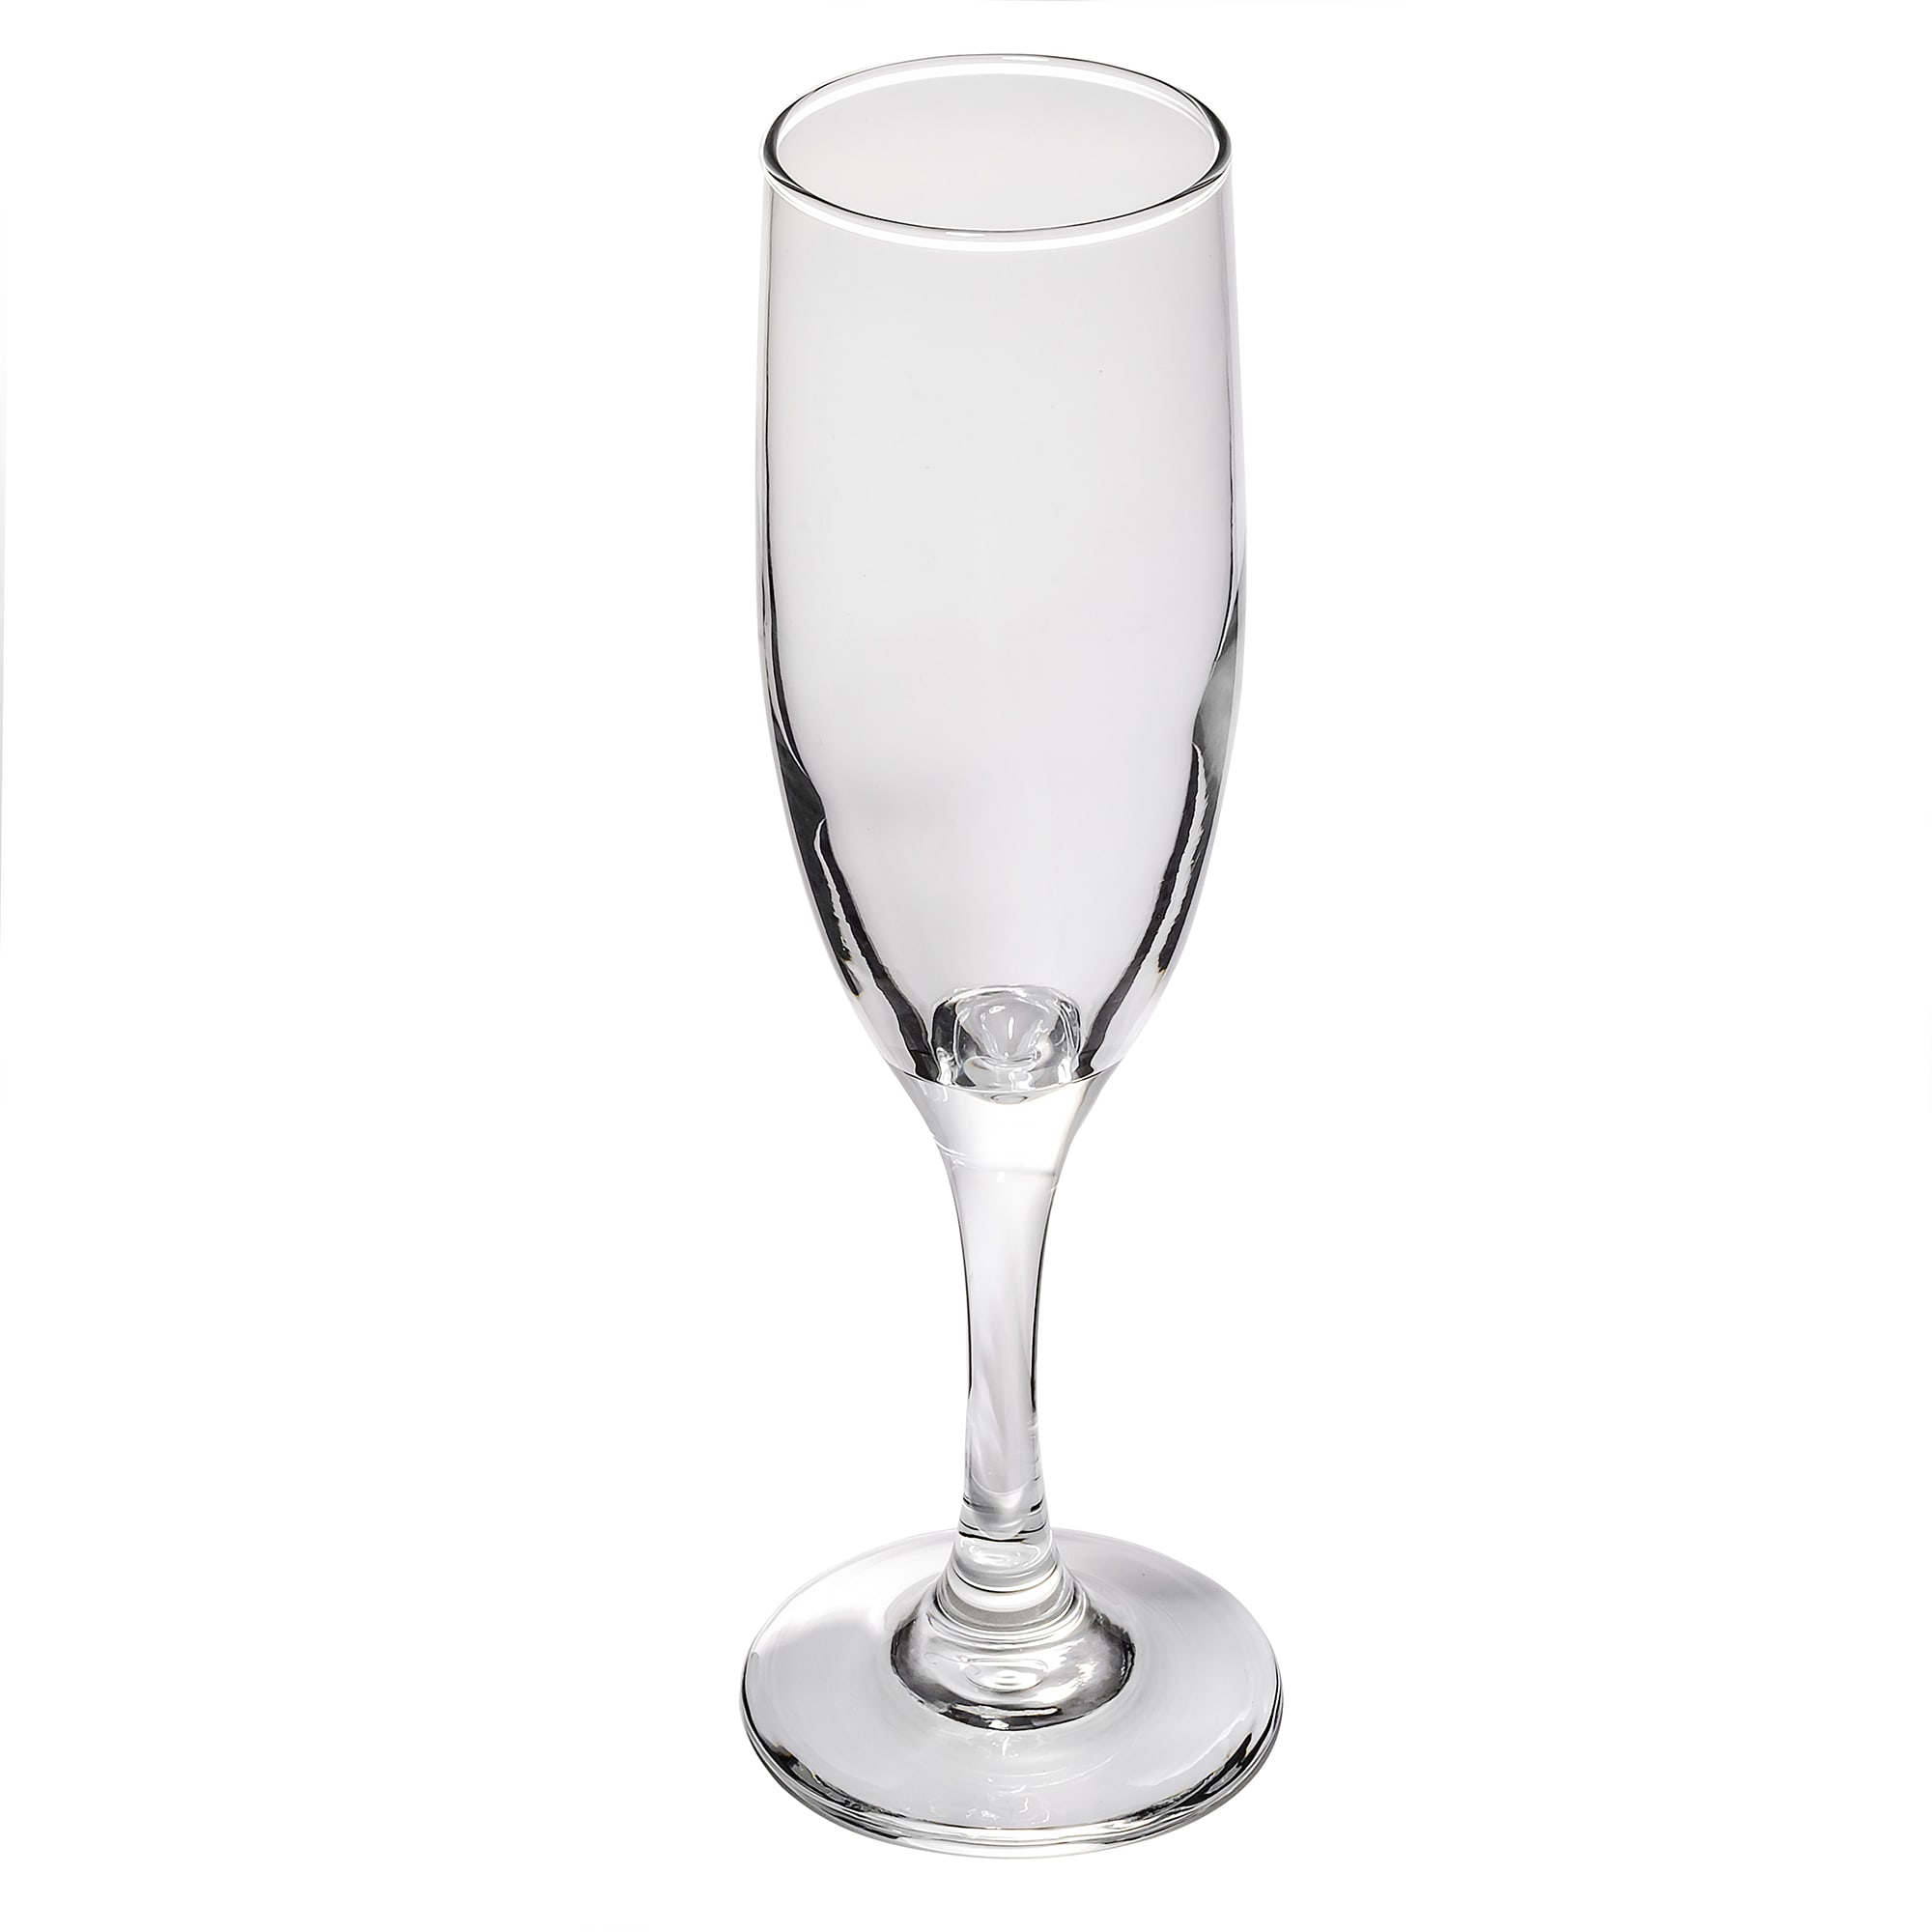 Libbey 3795 6-oz Embassy Flute Glass - Safedge Rim & Foot Guarantee